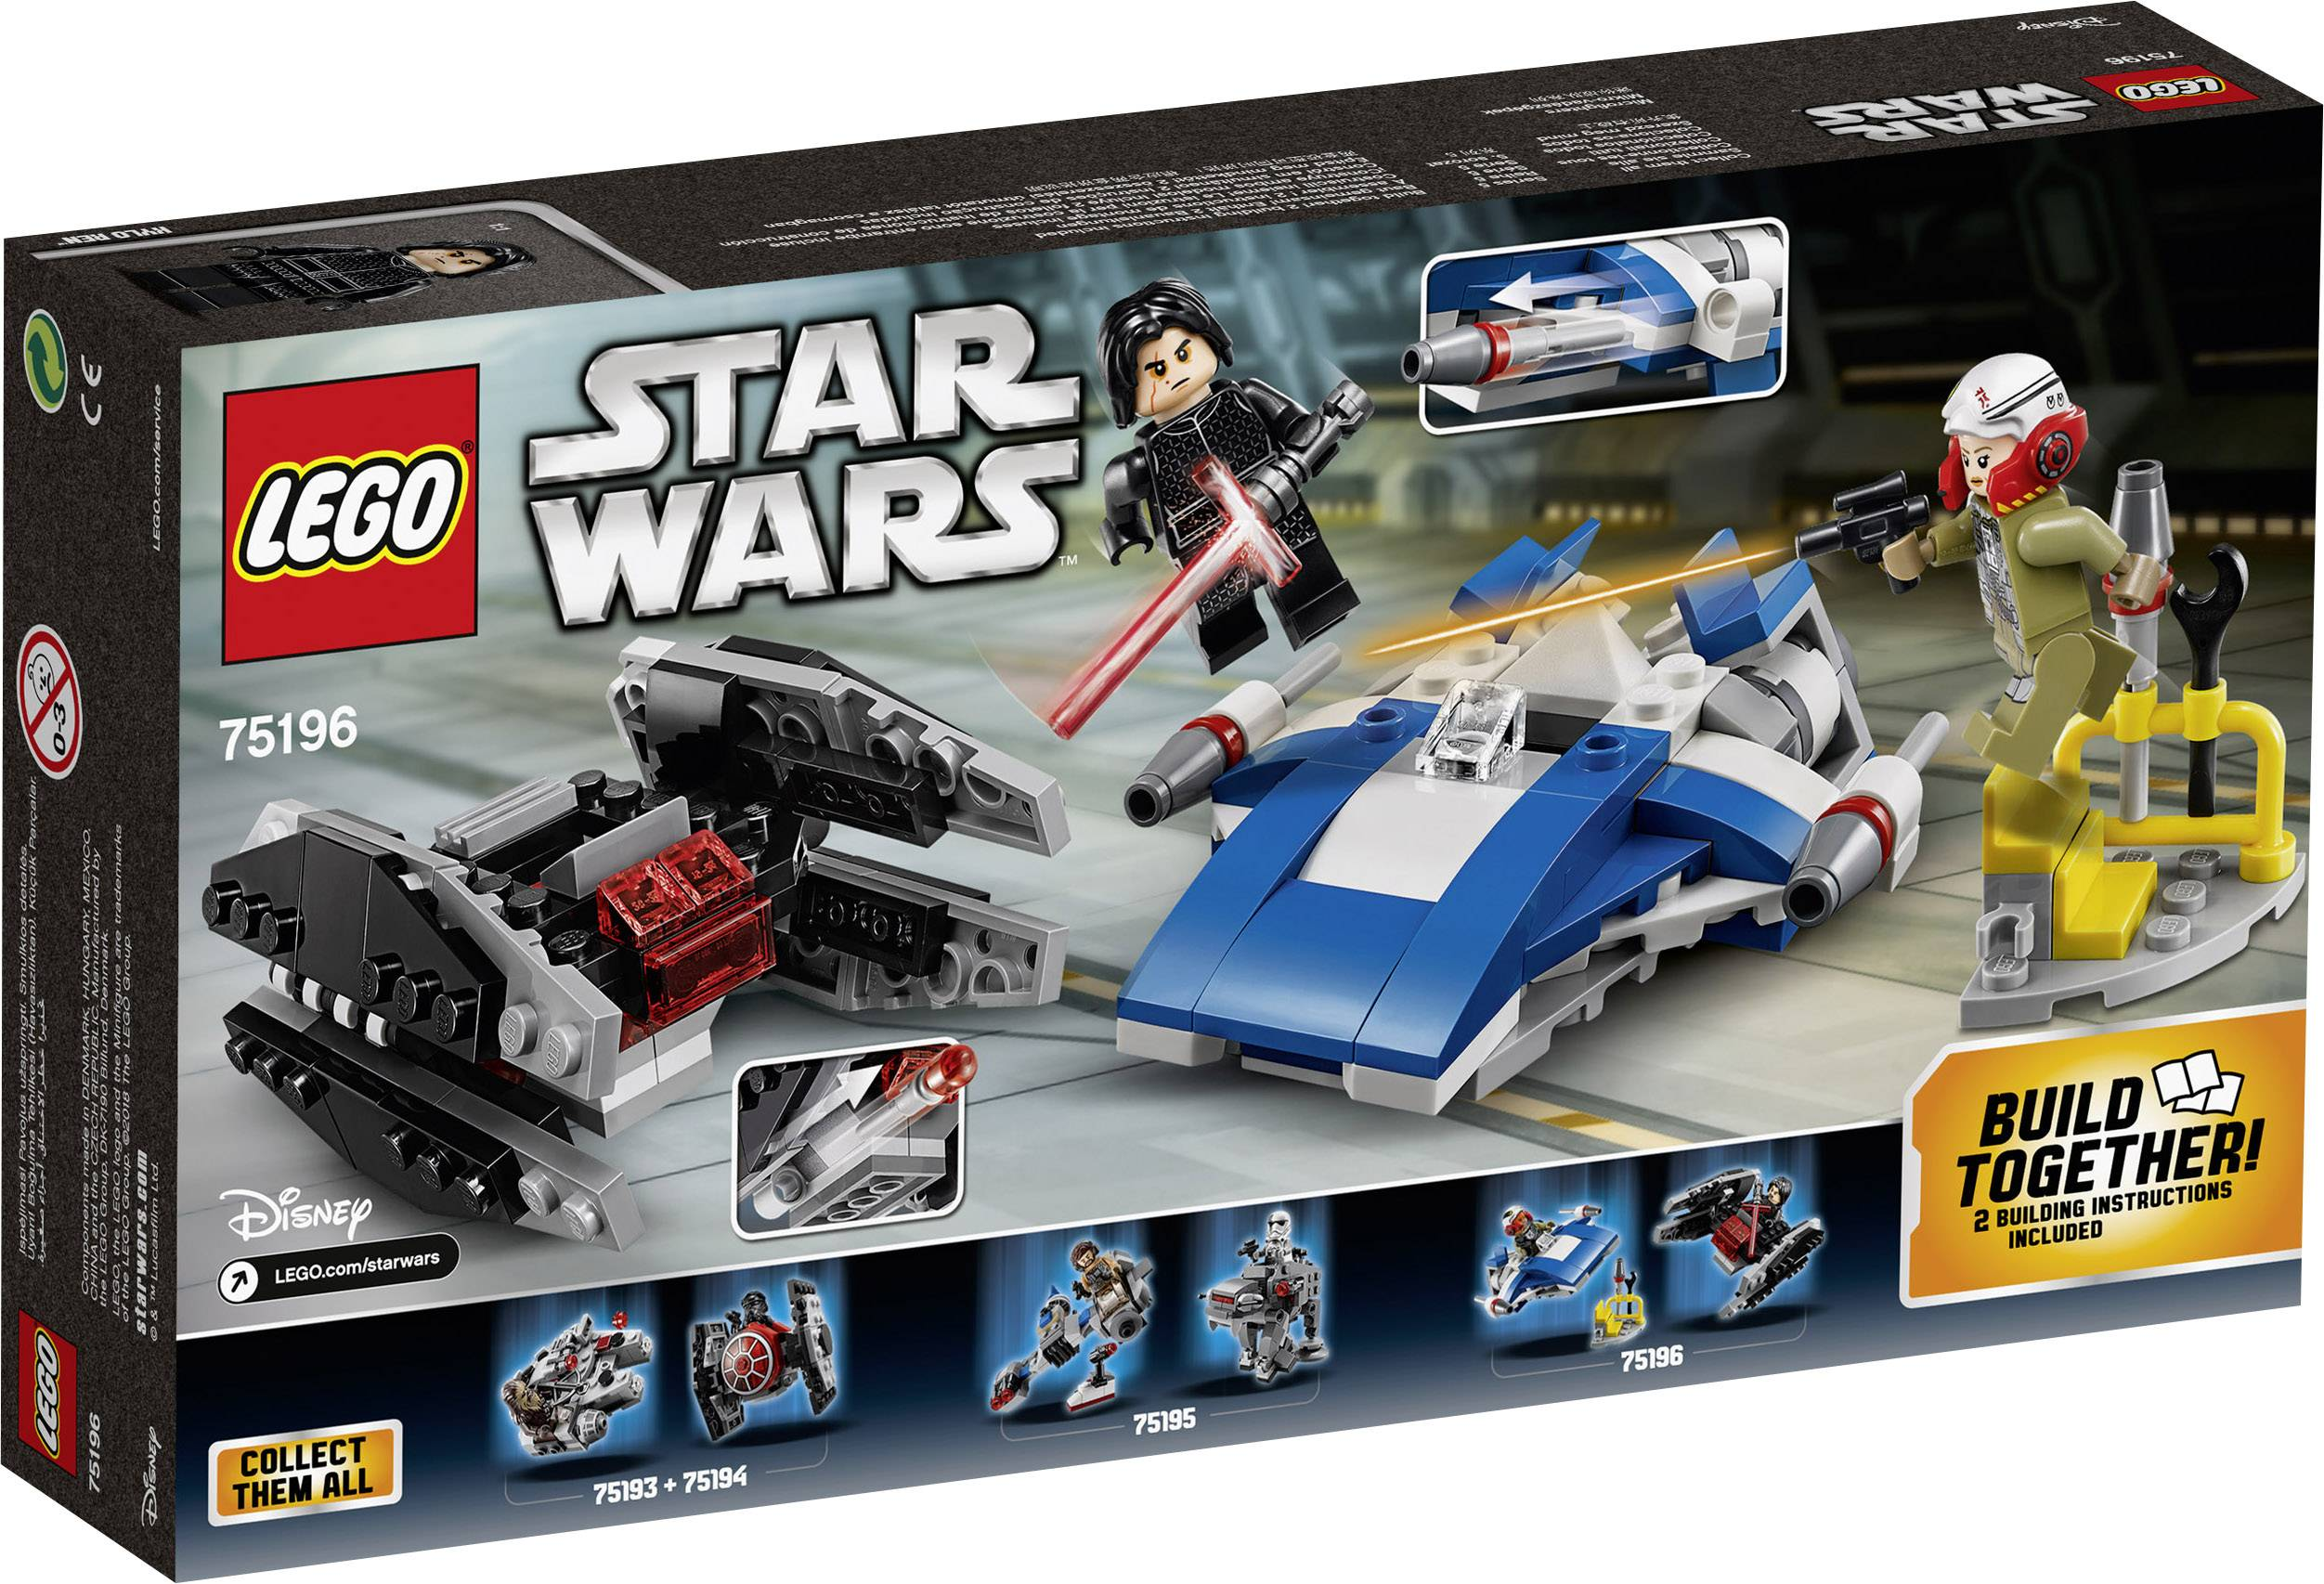 Lego Star Wars 75196 A Wing Vs Tie Silencer Micro Fighter